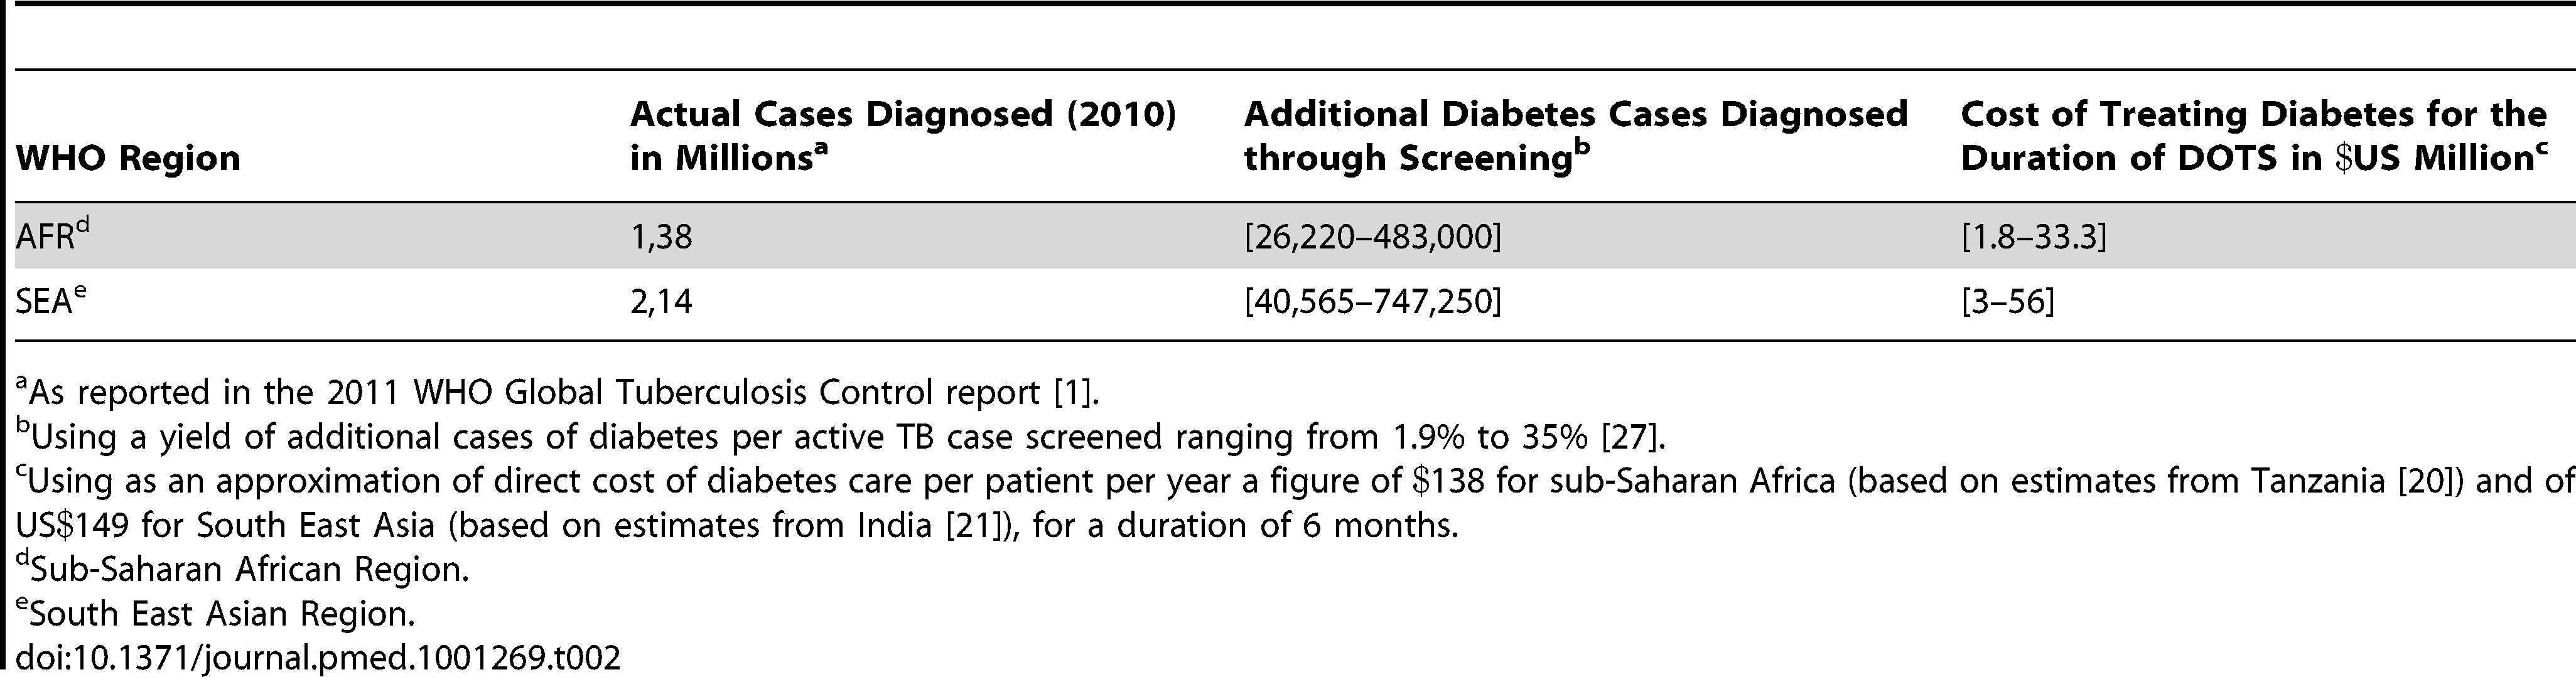 Additional funding required for diabetes care in TB patients using actual number of TB cases diagnosed in Africa and South East Asia.